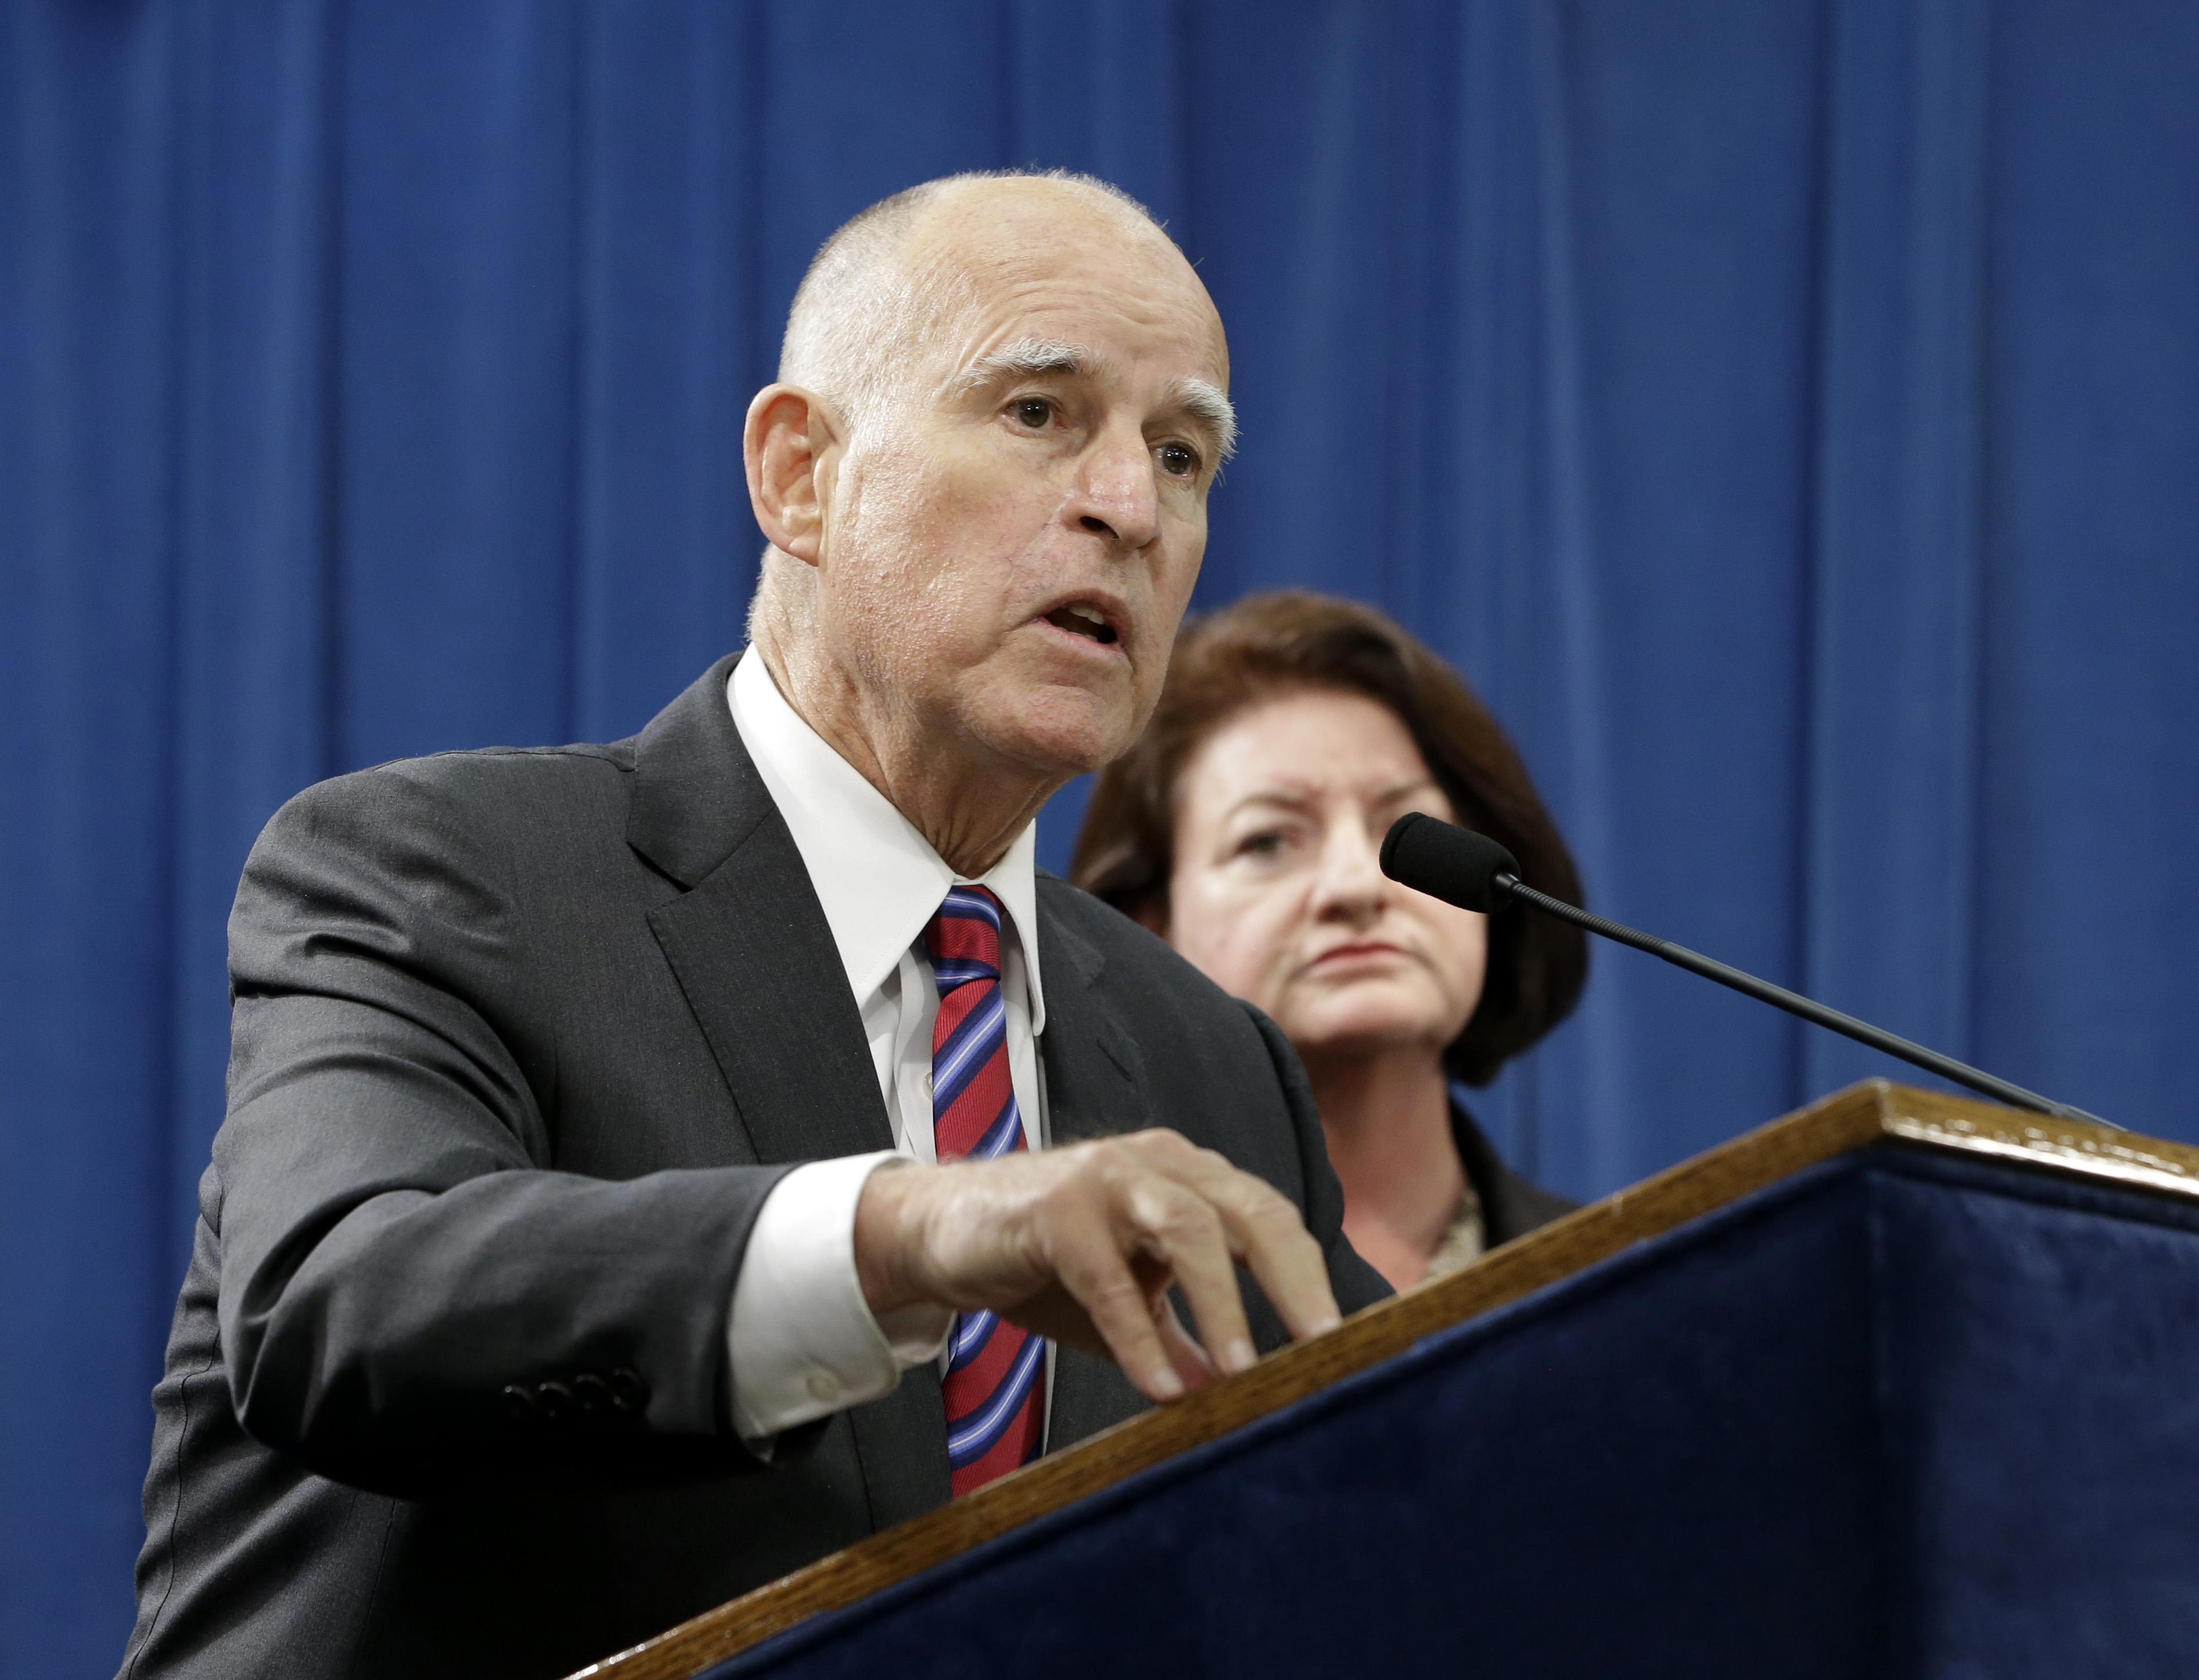 The California Senate approved legislation legalizing aid-in-dying Friday, sending it to the desk of California Gov. Jerry Brown, seen here at a Sept. 9, 2015, news conference in Sacramento, Calif.